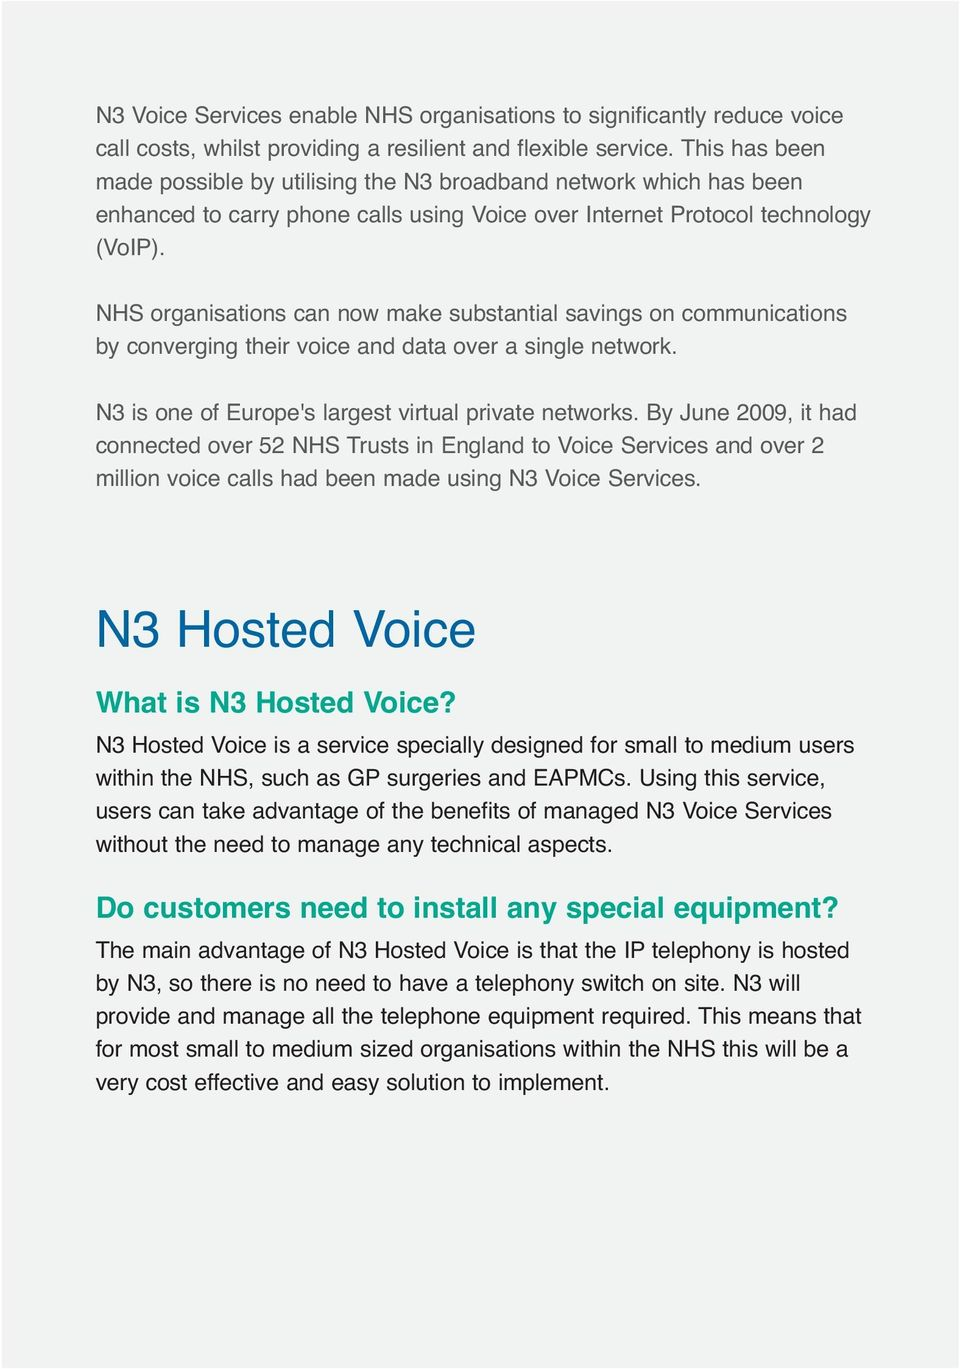 NHS organisations can now make substantial savings on communications by converging their voice and data over a single network. N3 is one of Europe's largest virtual private networks.